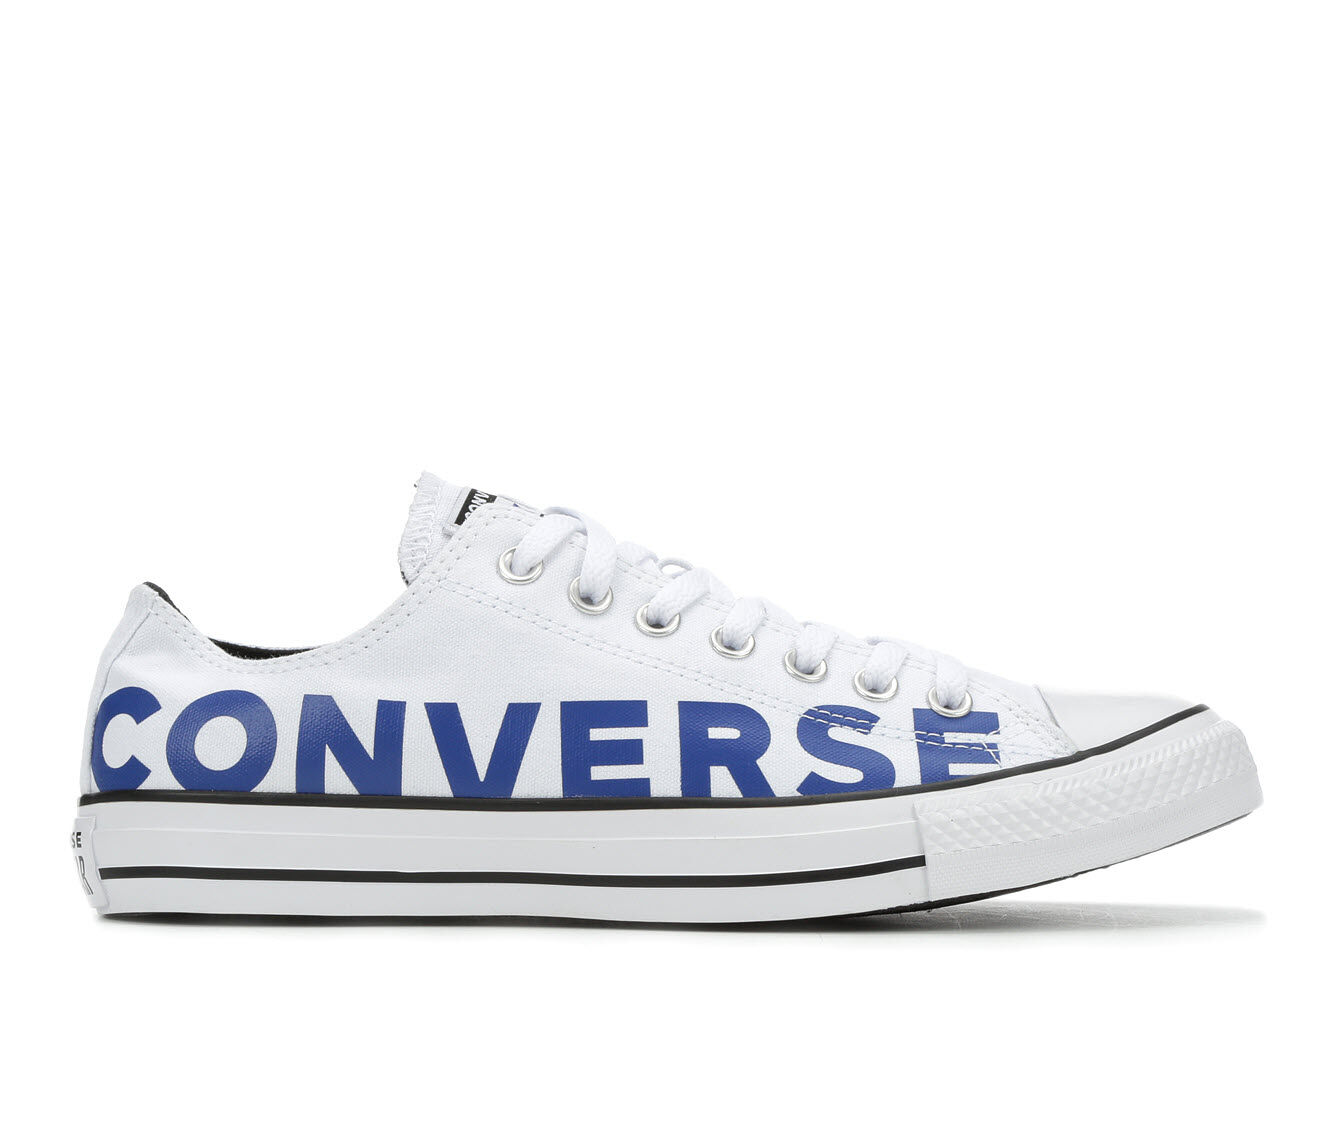 Adults' Converse Chuck Taylor Wordmark Ox 2.0 Sneakers Wht/Blu/Wht